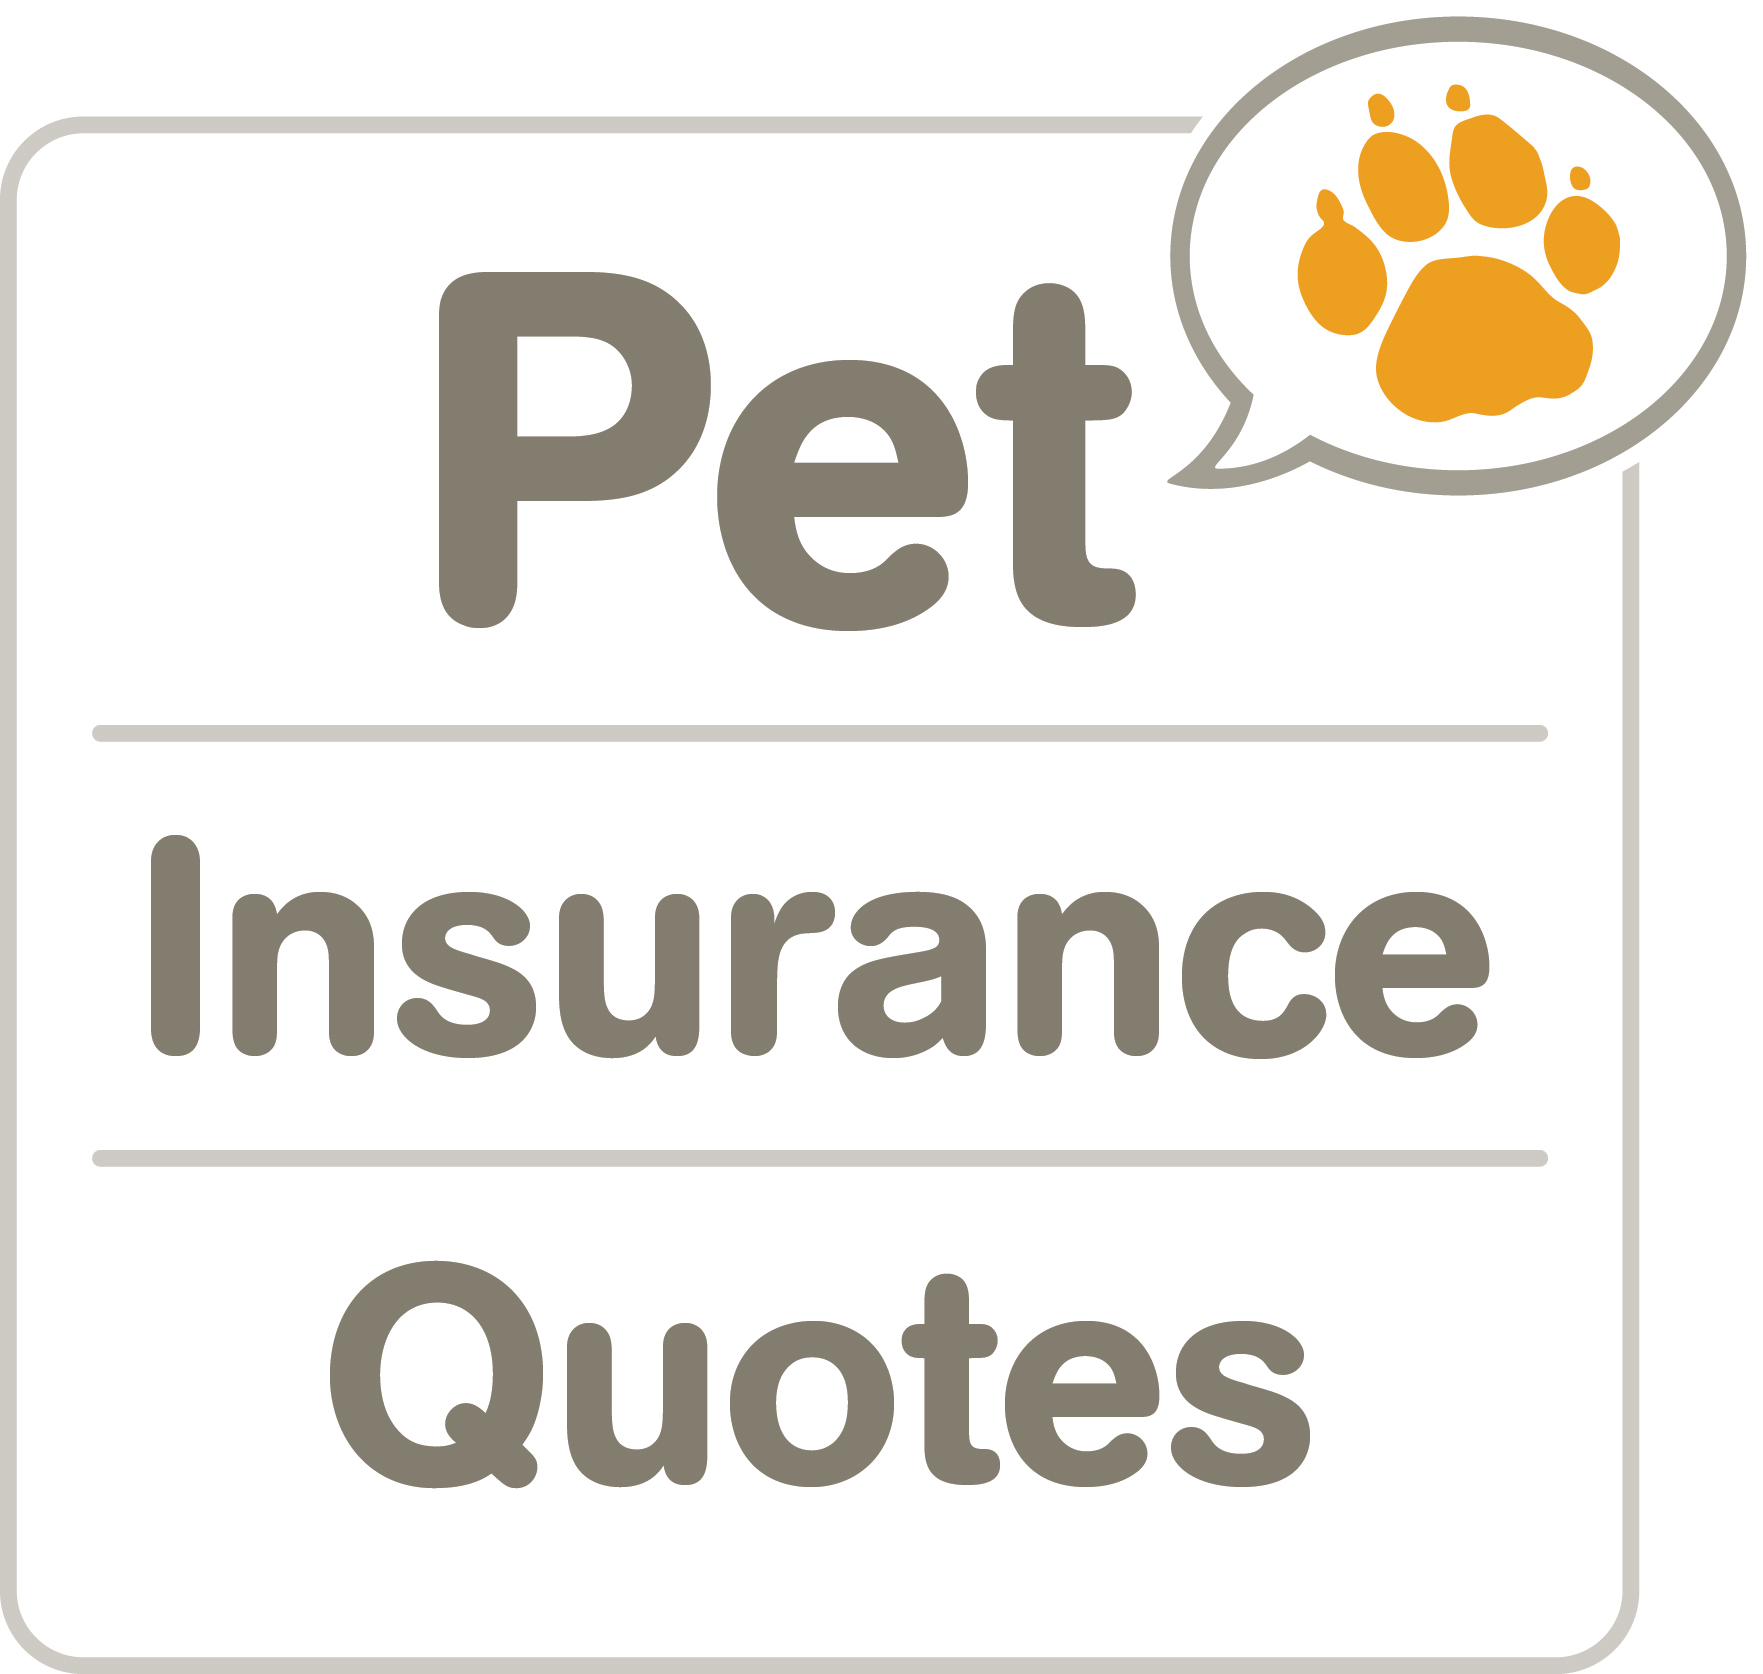 Insurance Quotes: Over 1,000,000 Pet Insurance Quotes Delivered